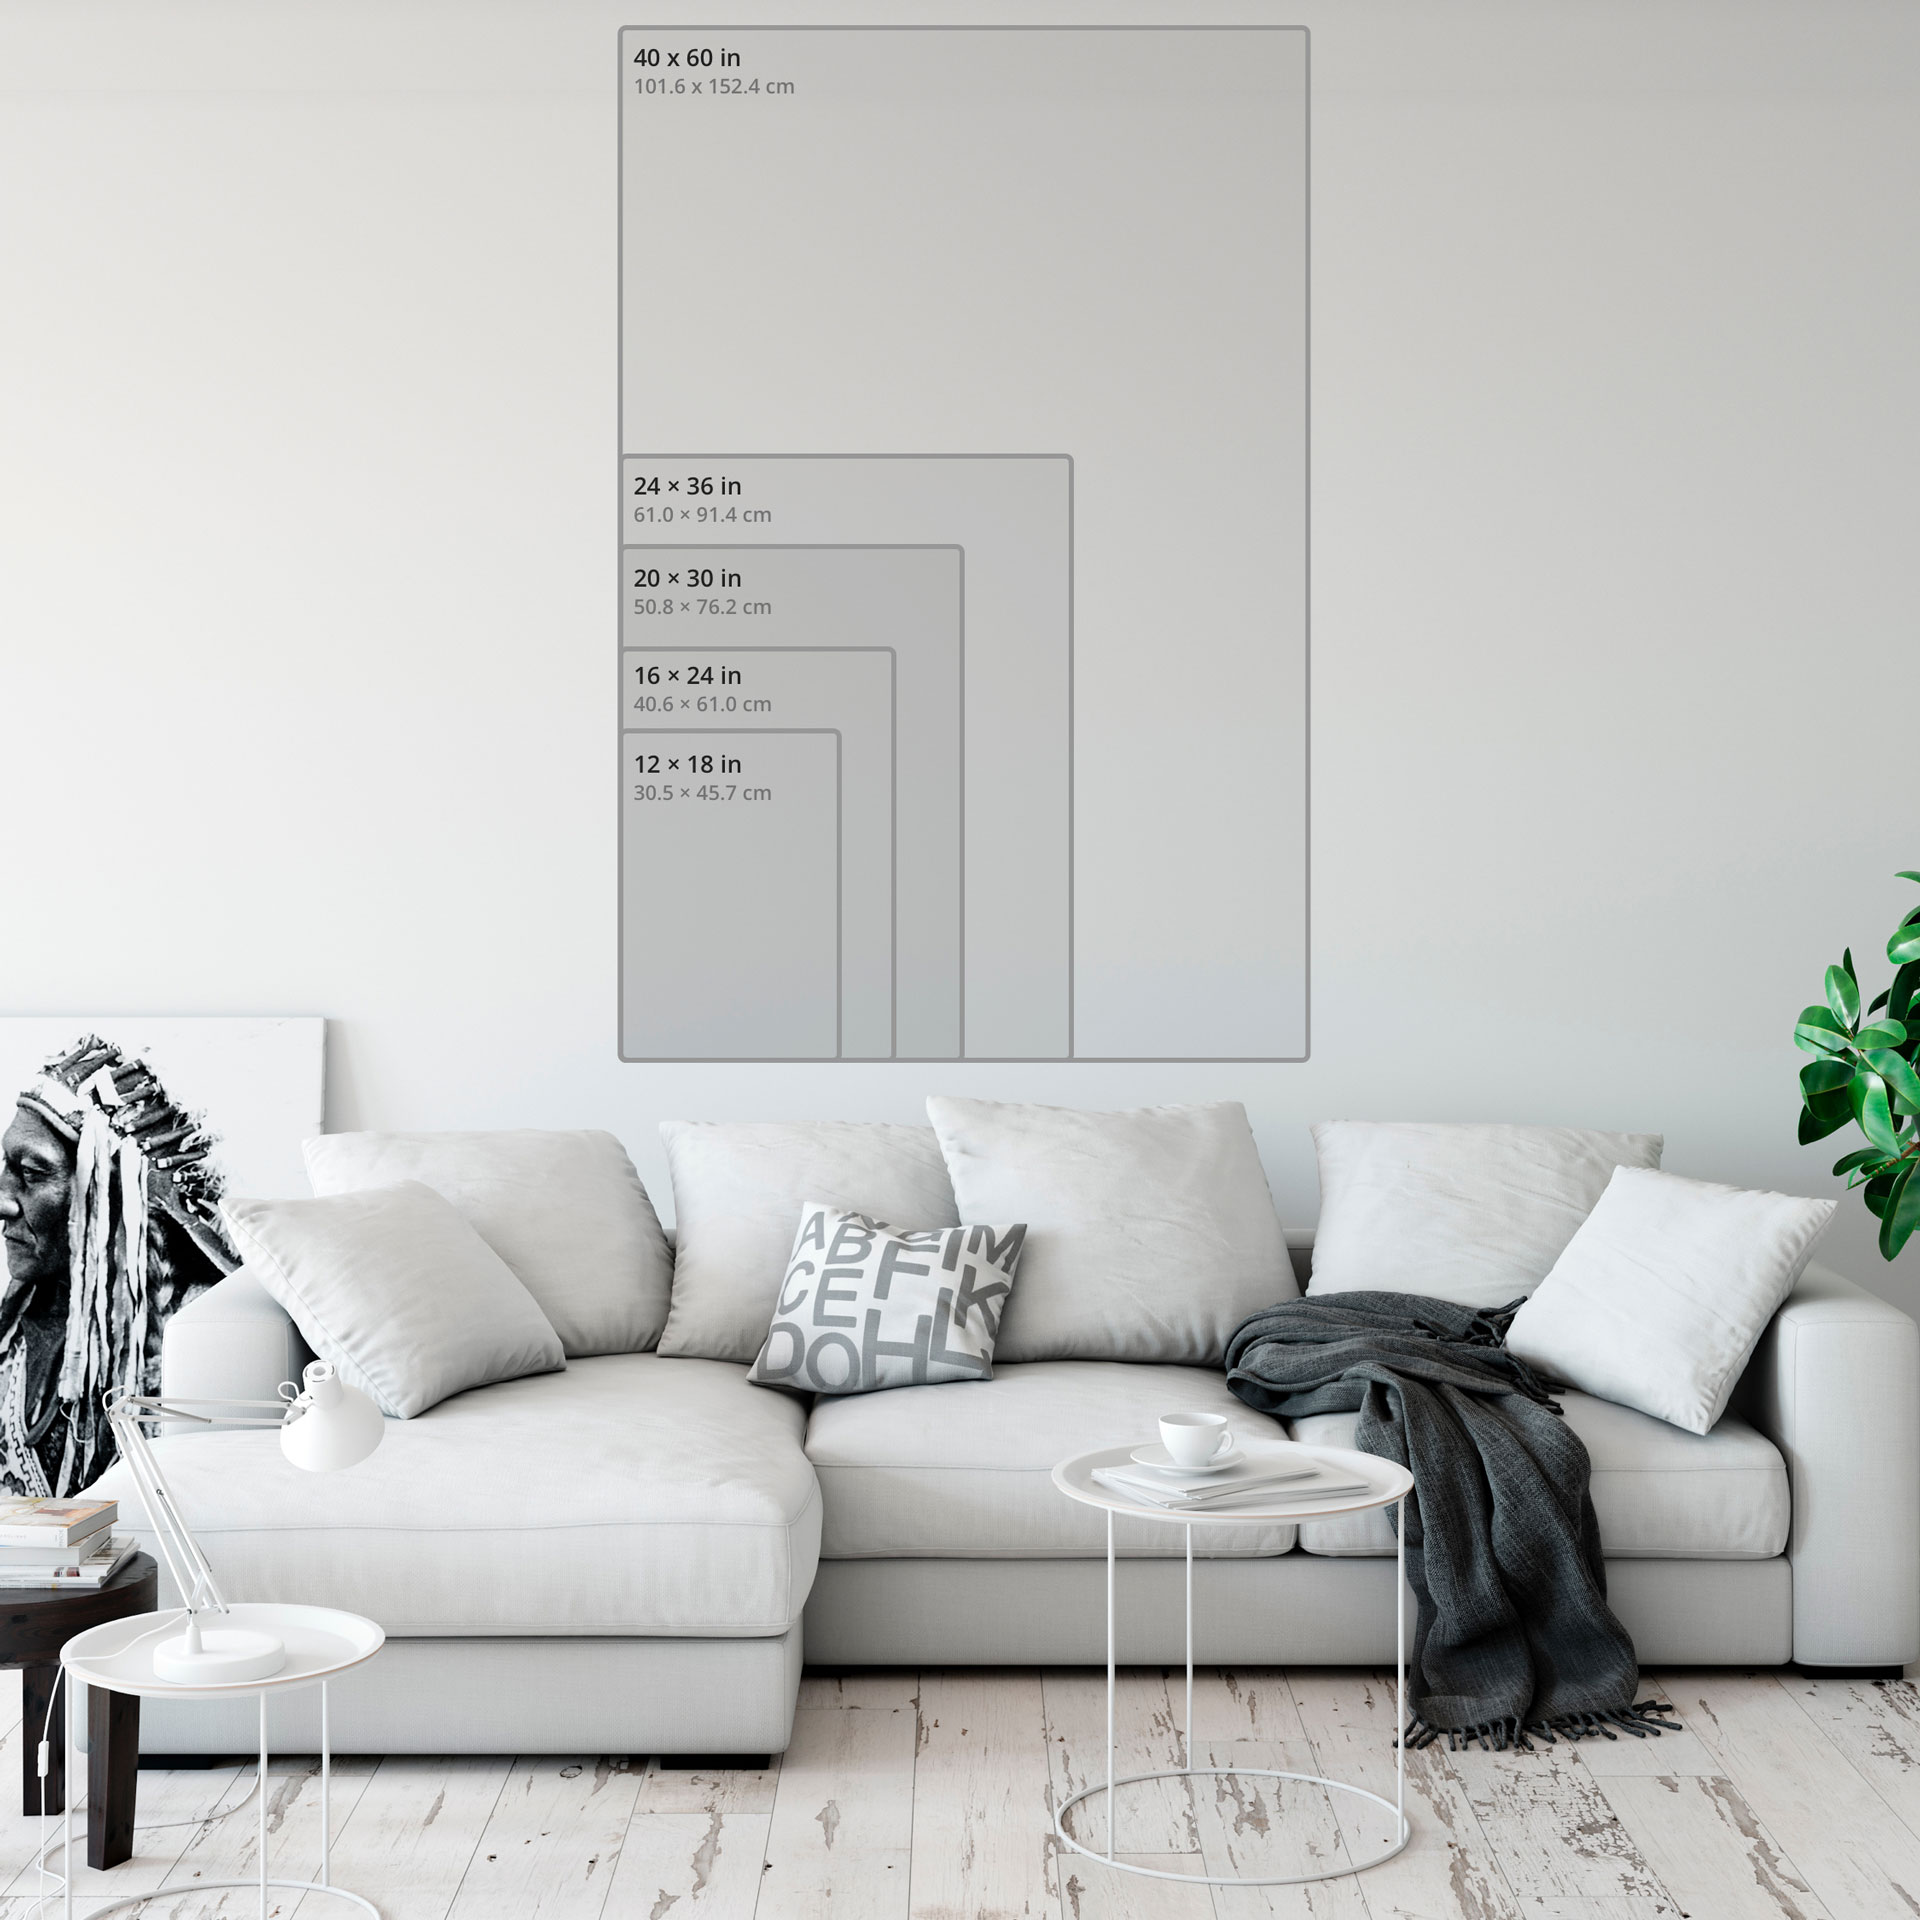 Hd metal print aspect ratio 0.67